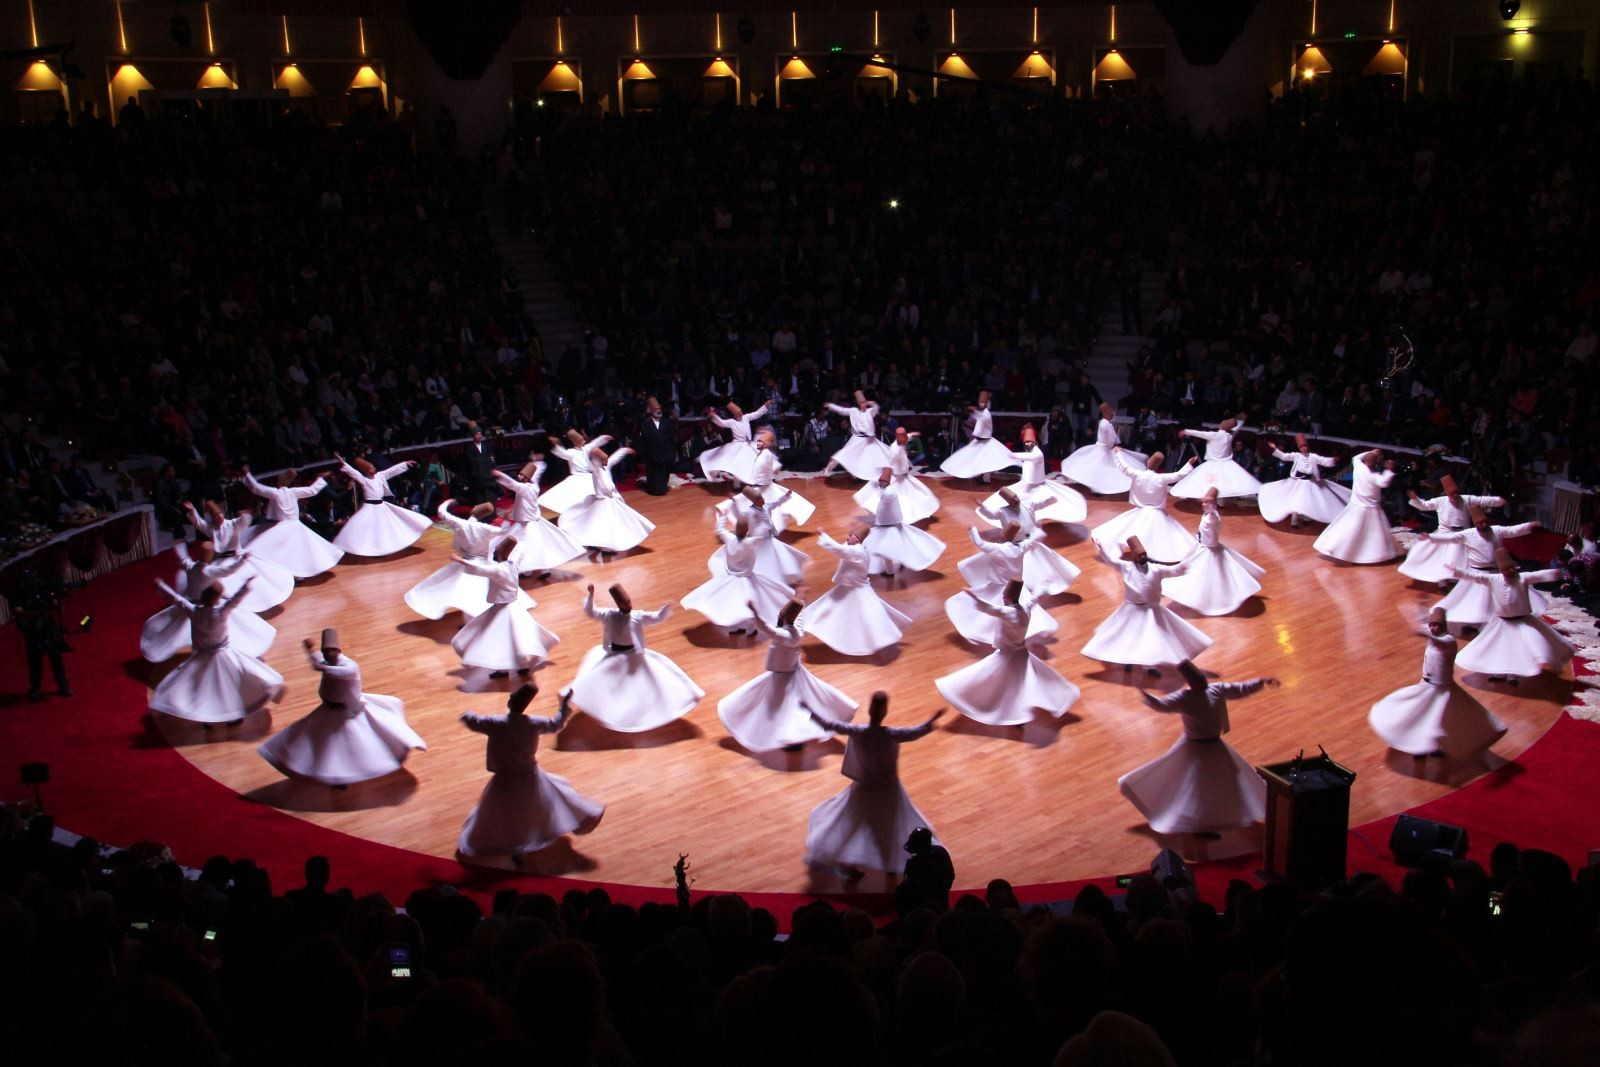 As part of the u015eeb-i Arus ceremonies, various events including whirling performances will be organized.